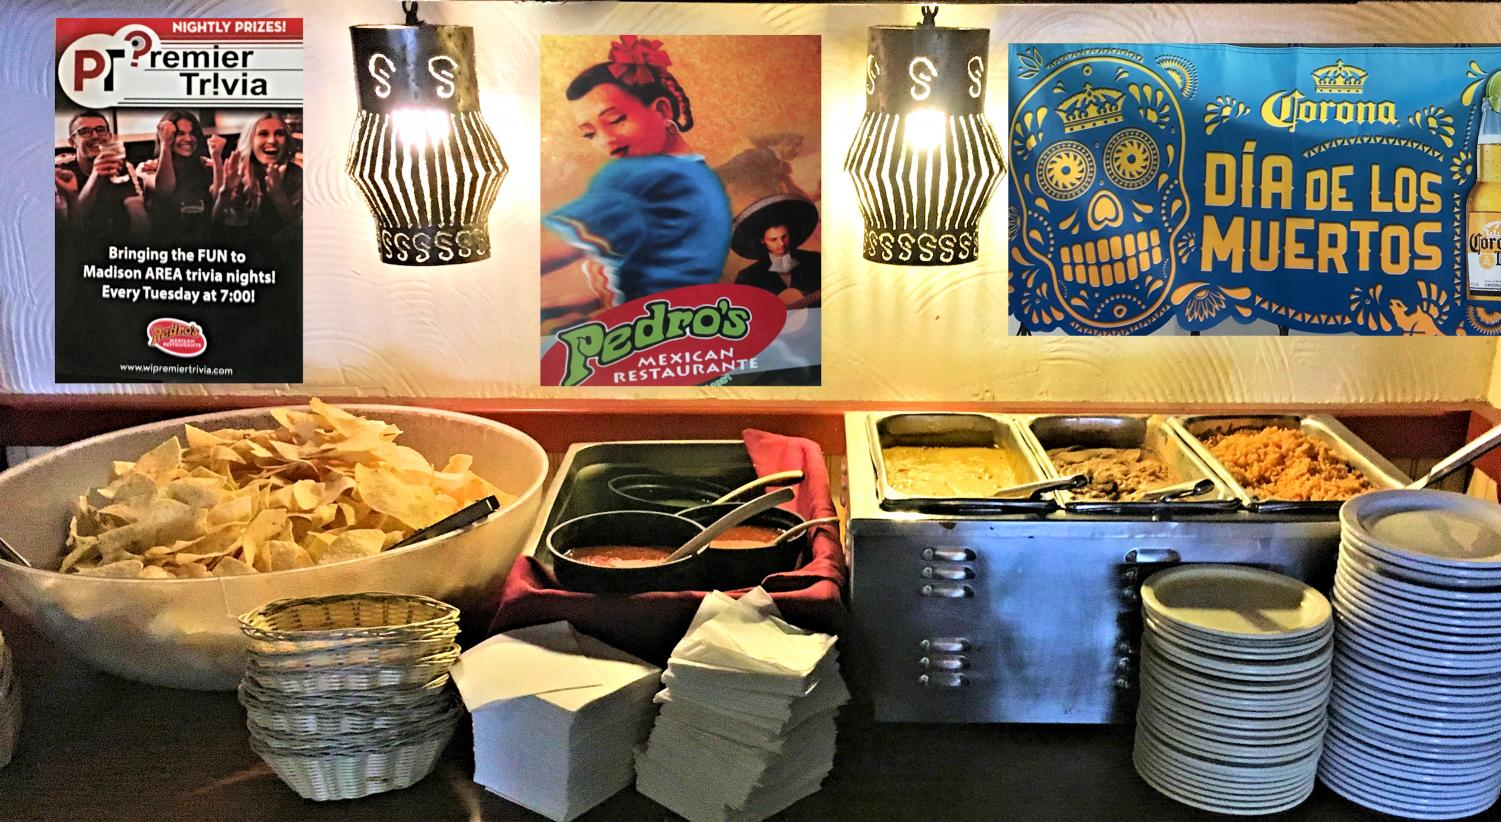 Free snacks and weekly events at Pedro's